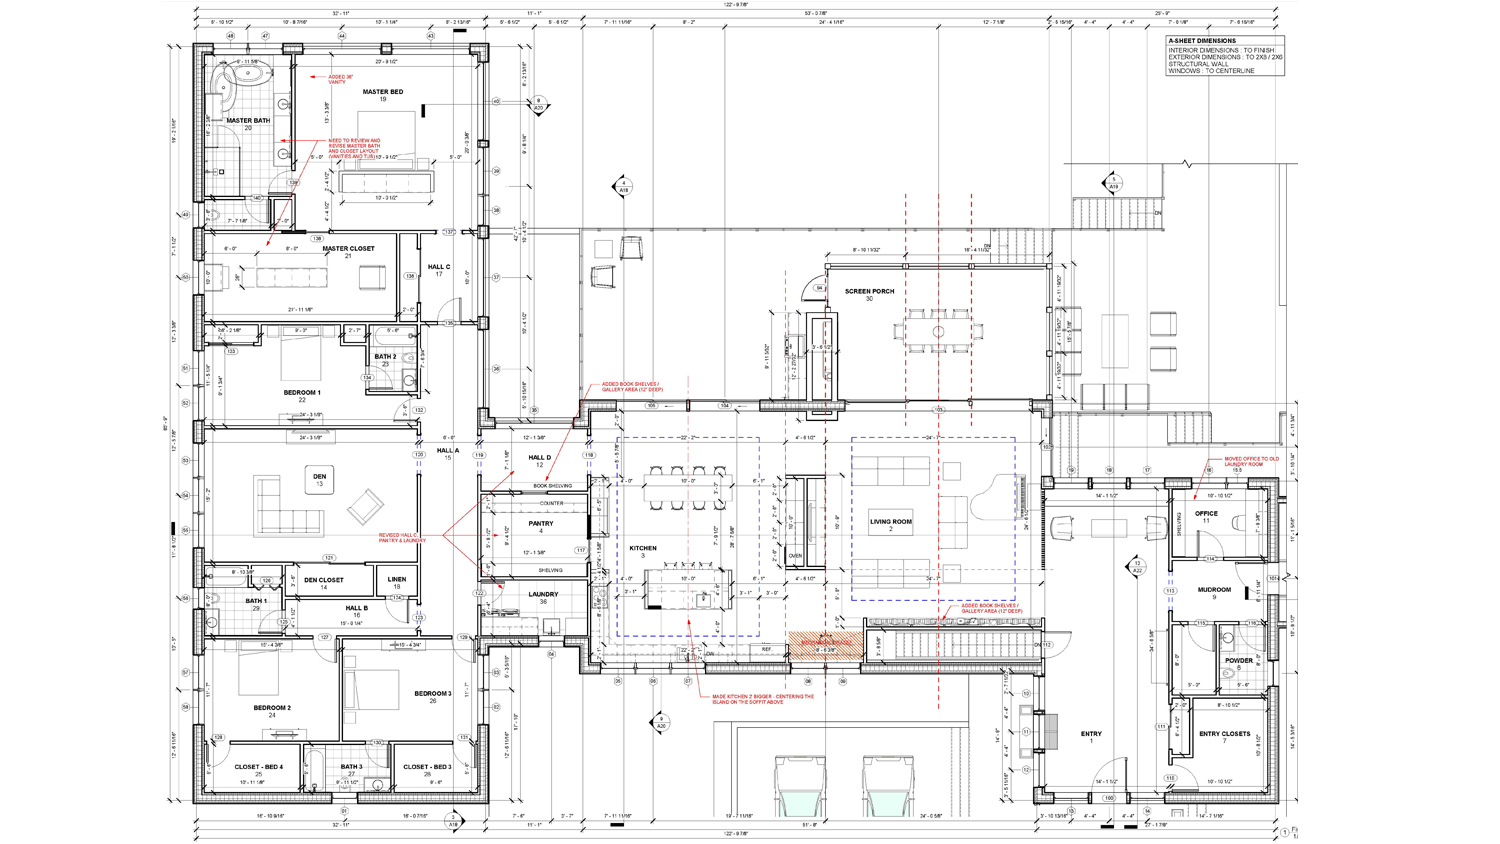 Montem Villam First Floor Plan A